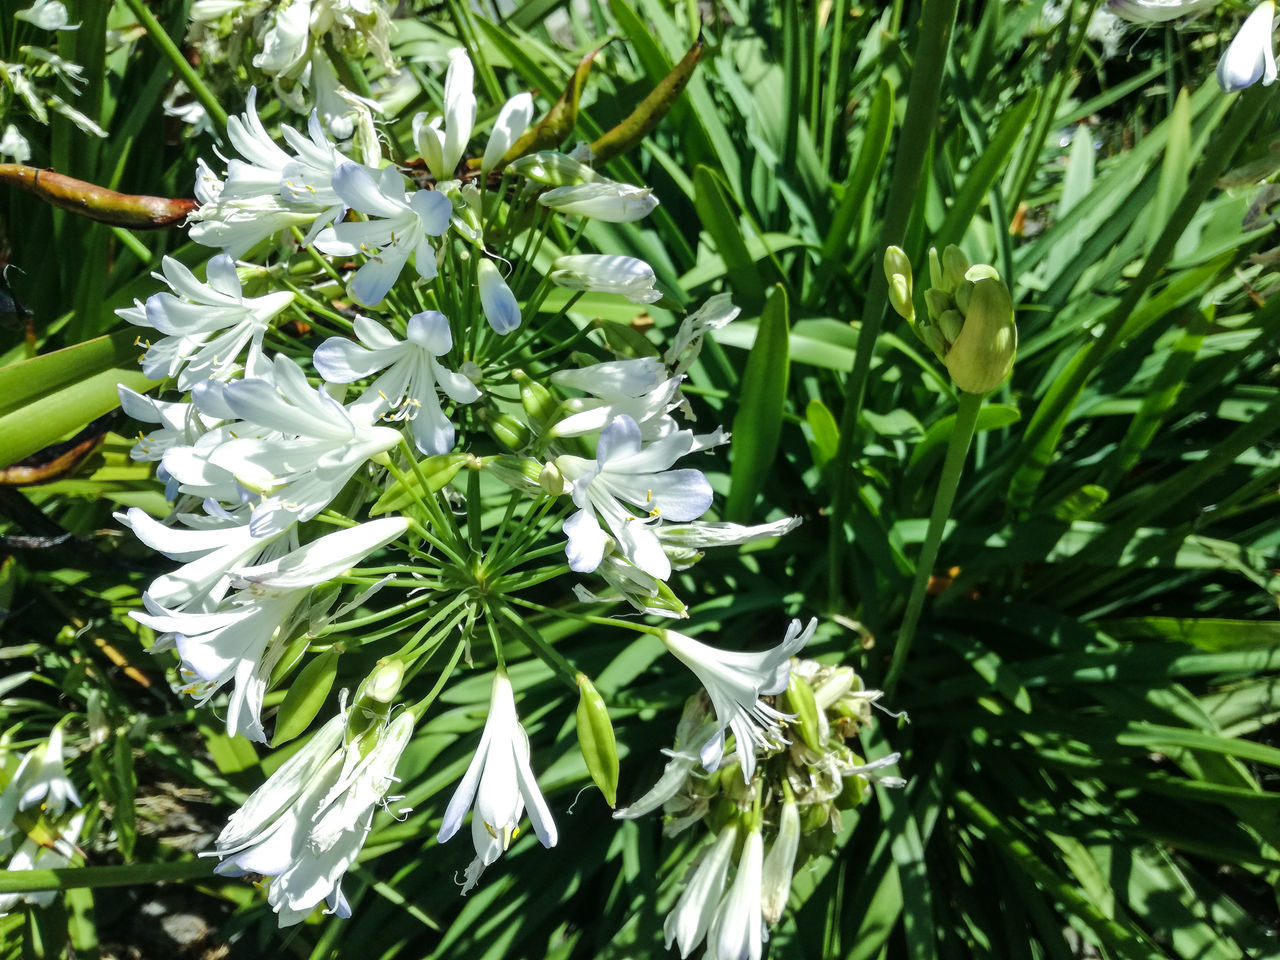 Another Agapanthus shot, in white this time. Growth Nature Green Color Beauty In Nature Leaf Plant No People Close-up Outdoors Flower Freshness Flower Head New Zealand Scenery New Zealand Beauty Agapanthus EyeEm Nature Lover EyeEm Best Shots - Nature EyeEm Flower